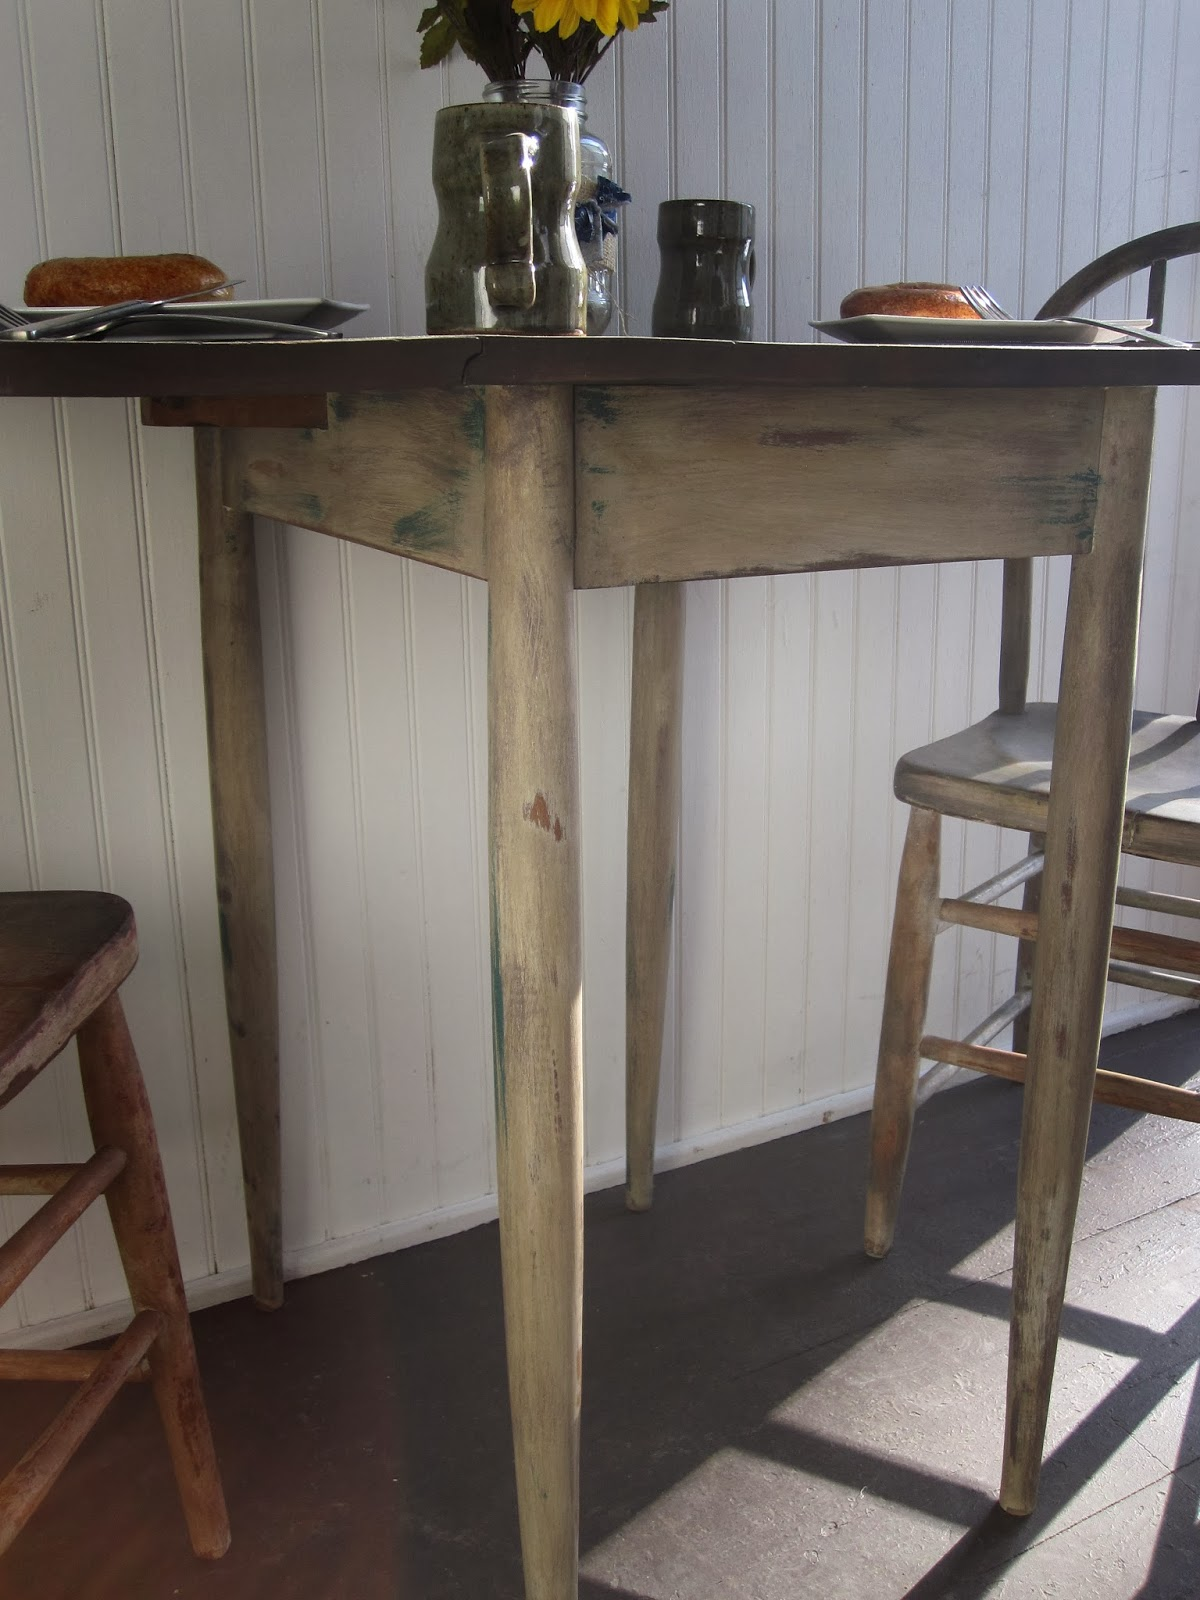 Chubby Junk: Two Person Dining Set/Dining Table and Chairs